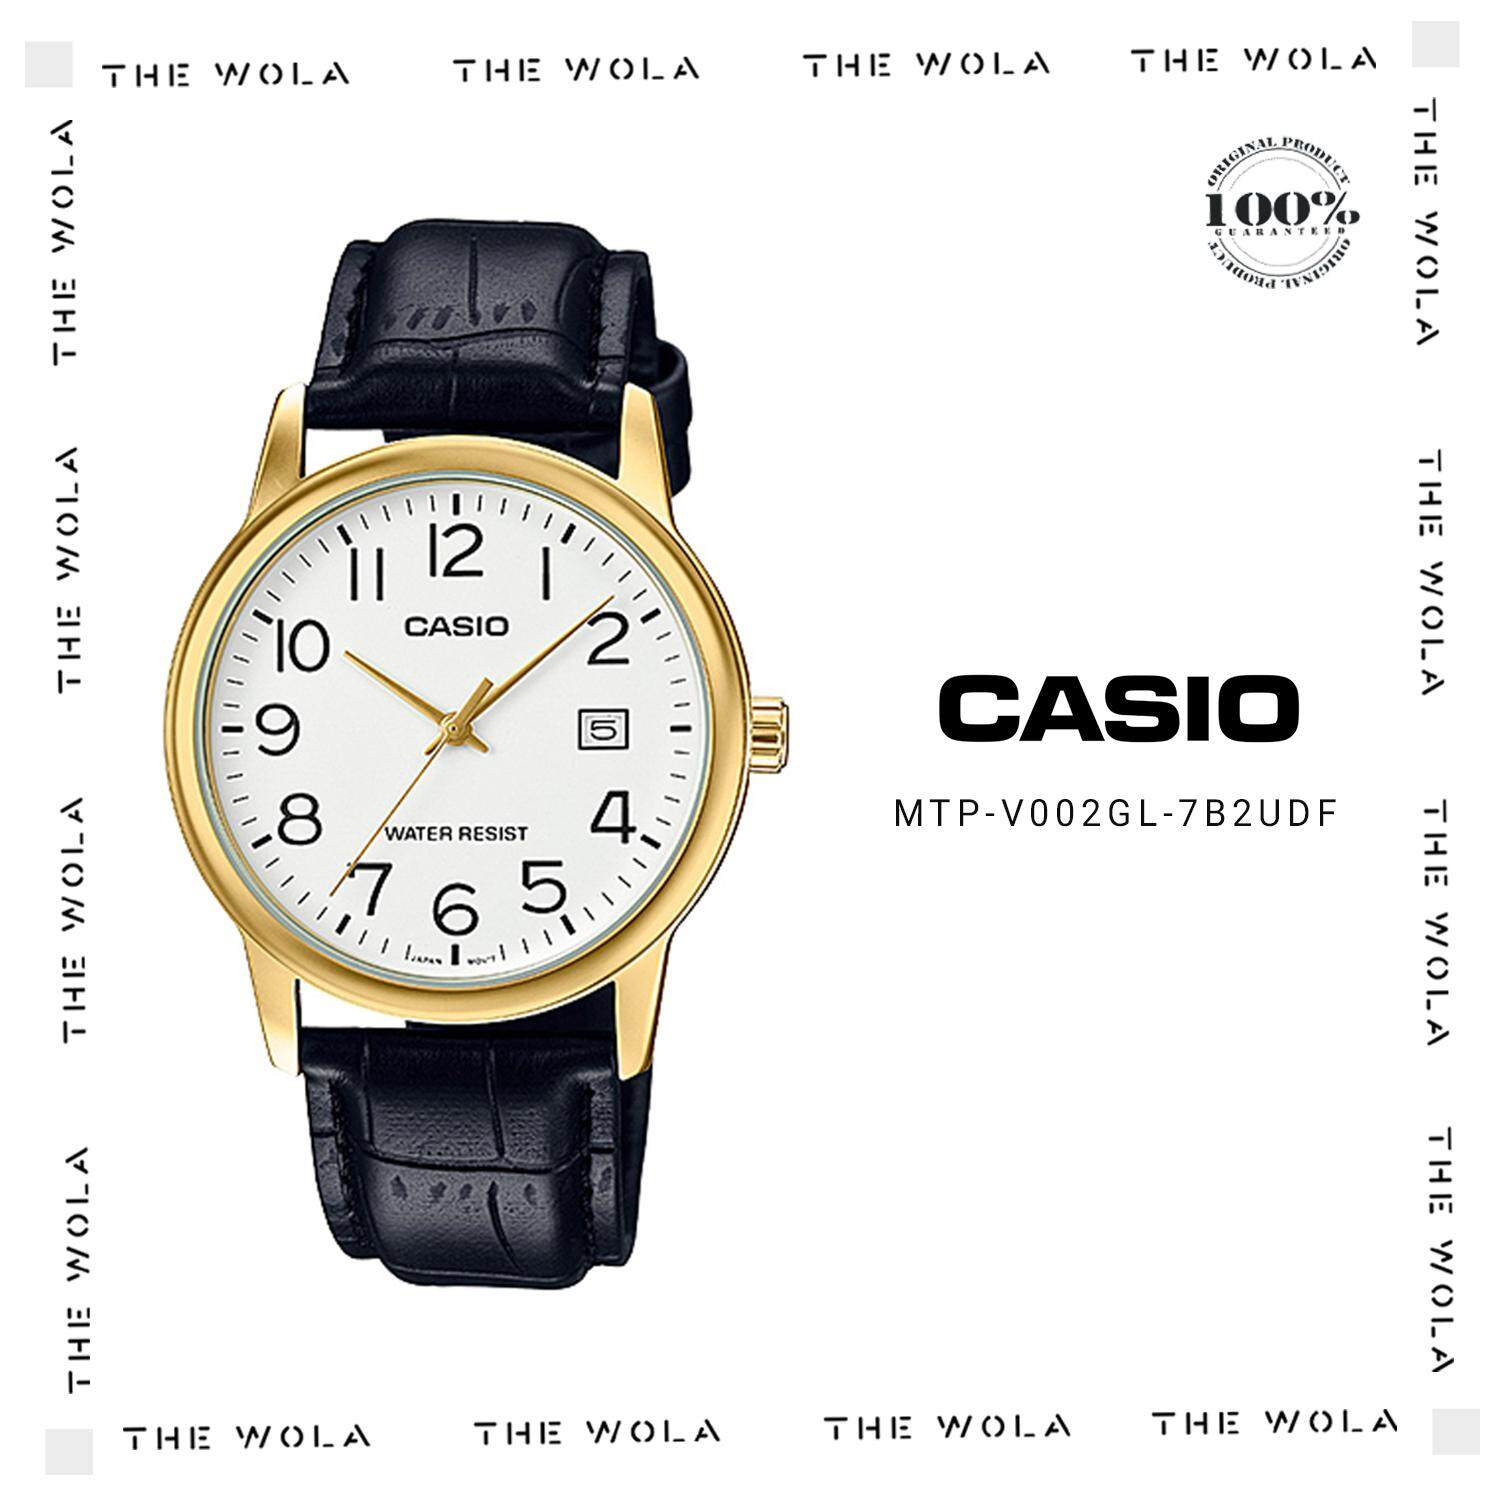 Casio Men Watch Mtp V002l 1a Black Buy Sell Cheapest Casual Best Quality Product Deals V002gl 7b2udf Original Genuine 1 Year Warranty